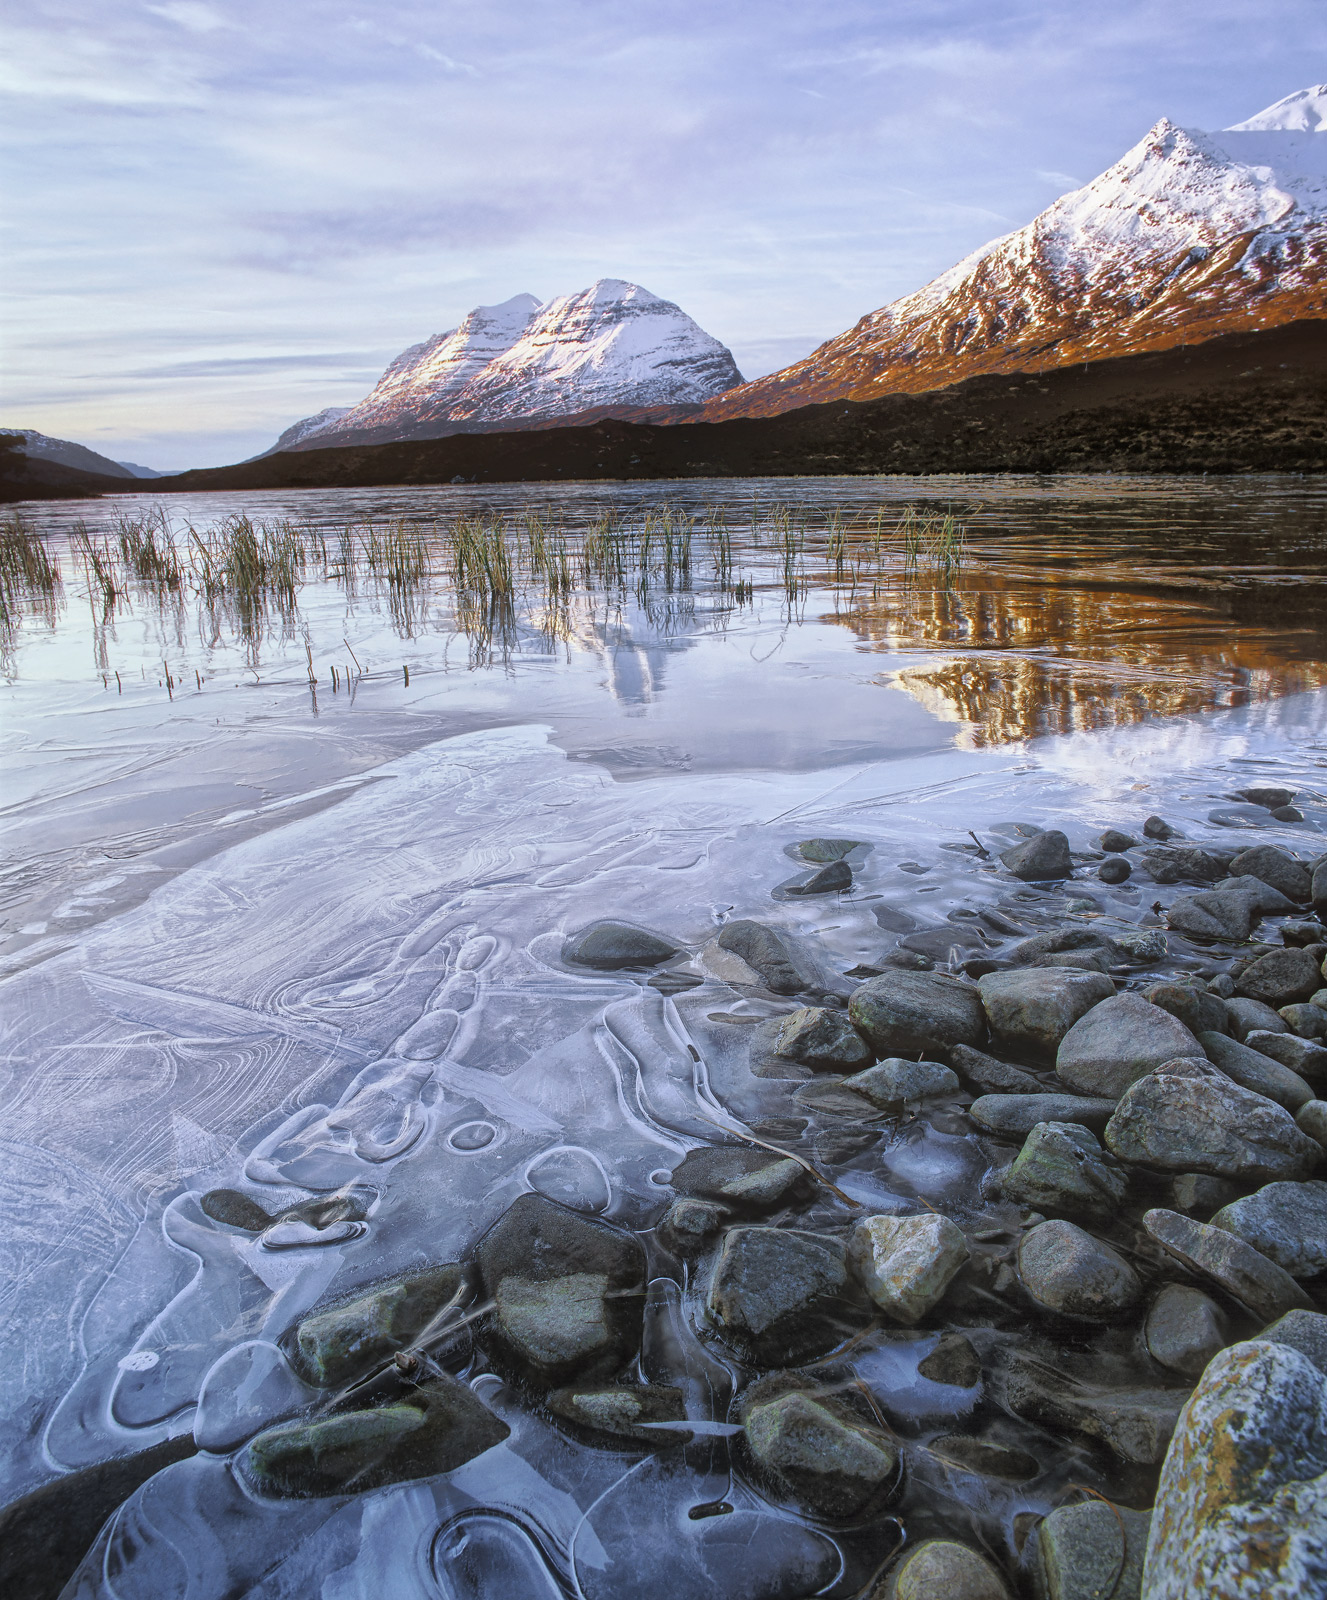 Clair Ice Bubbles, Loch Clair, Torridon, Scotland, winter, weather, magical, cold, fractured, ice, sheet, reflection, Li, photo